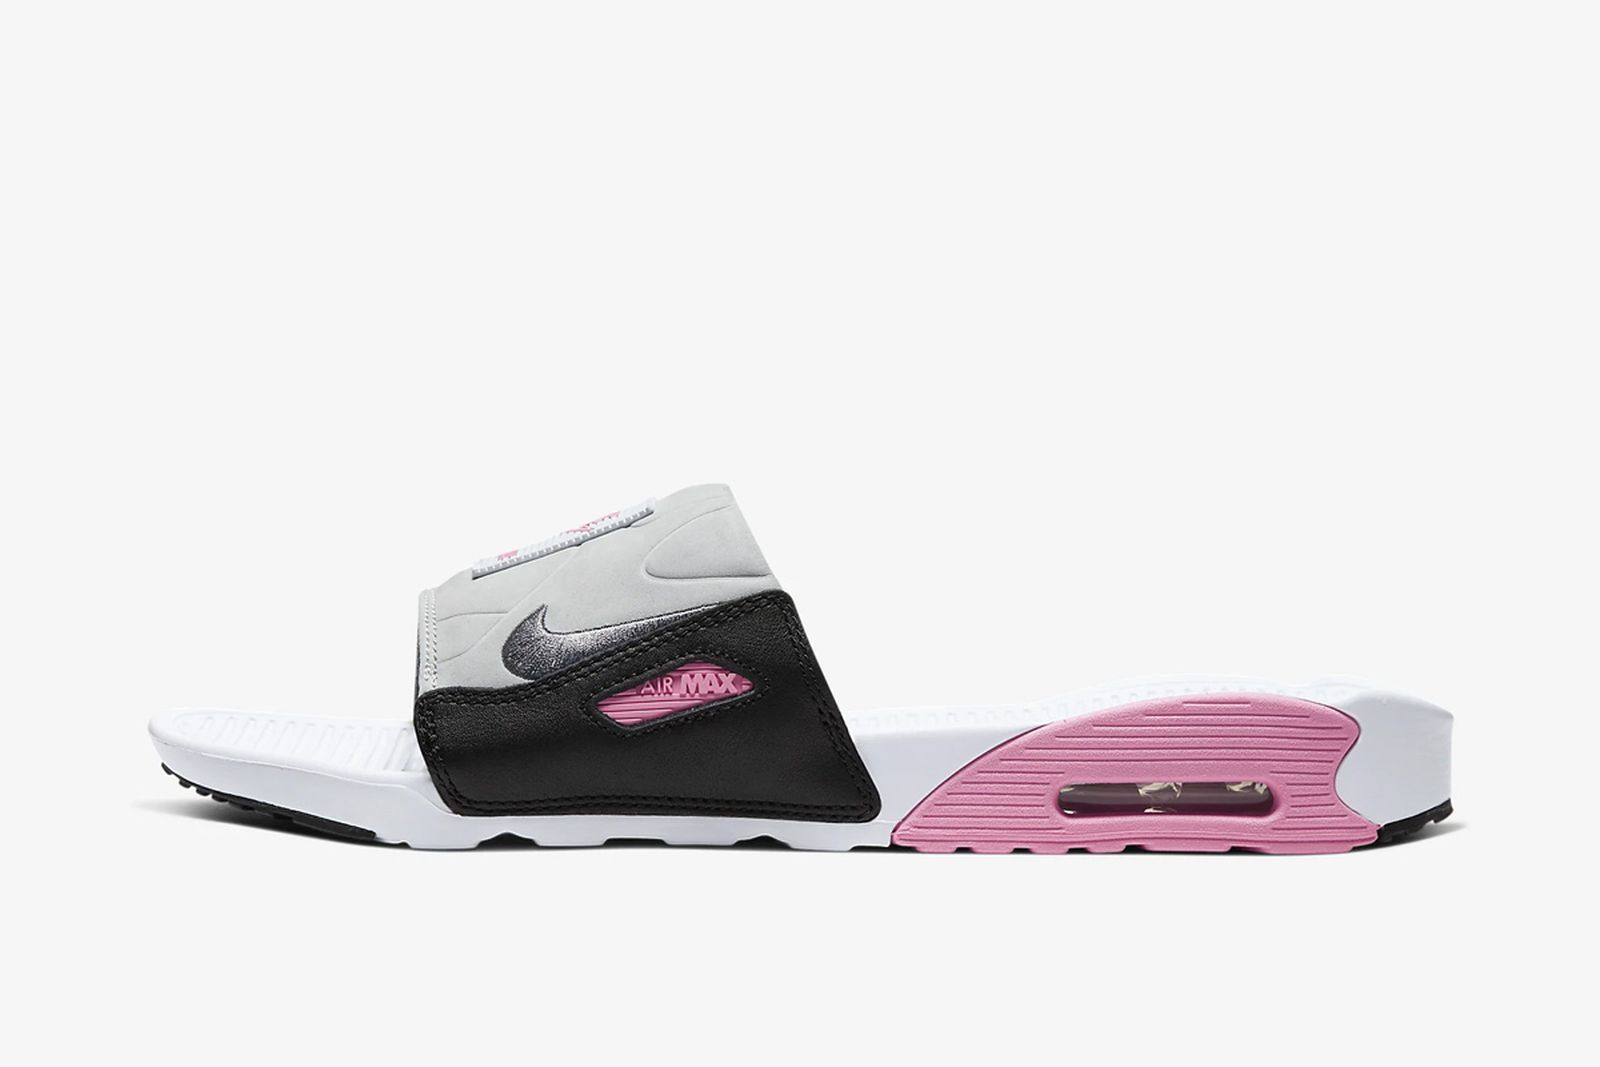 Nike Air Max 90: Official Images & Where to Buy